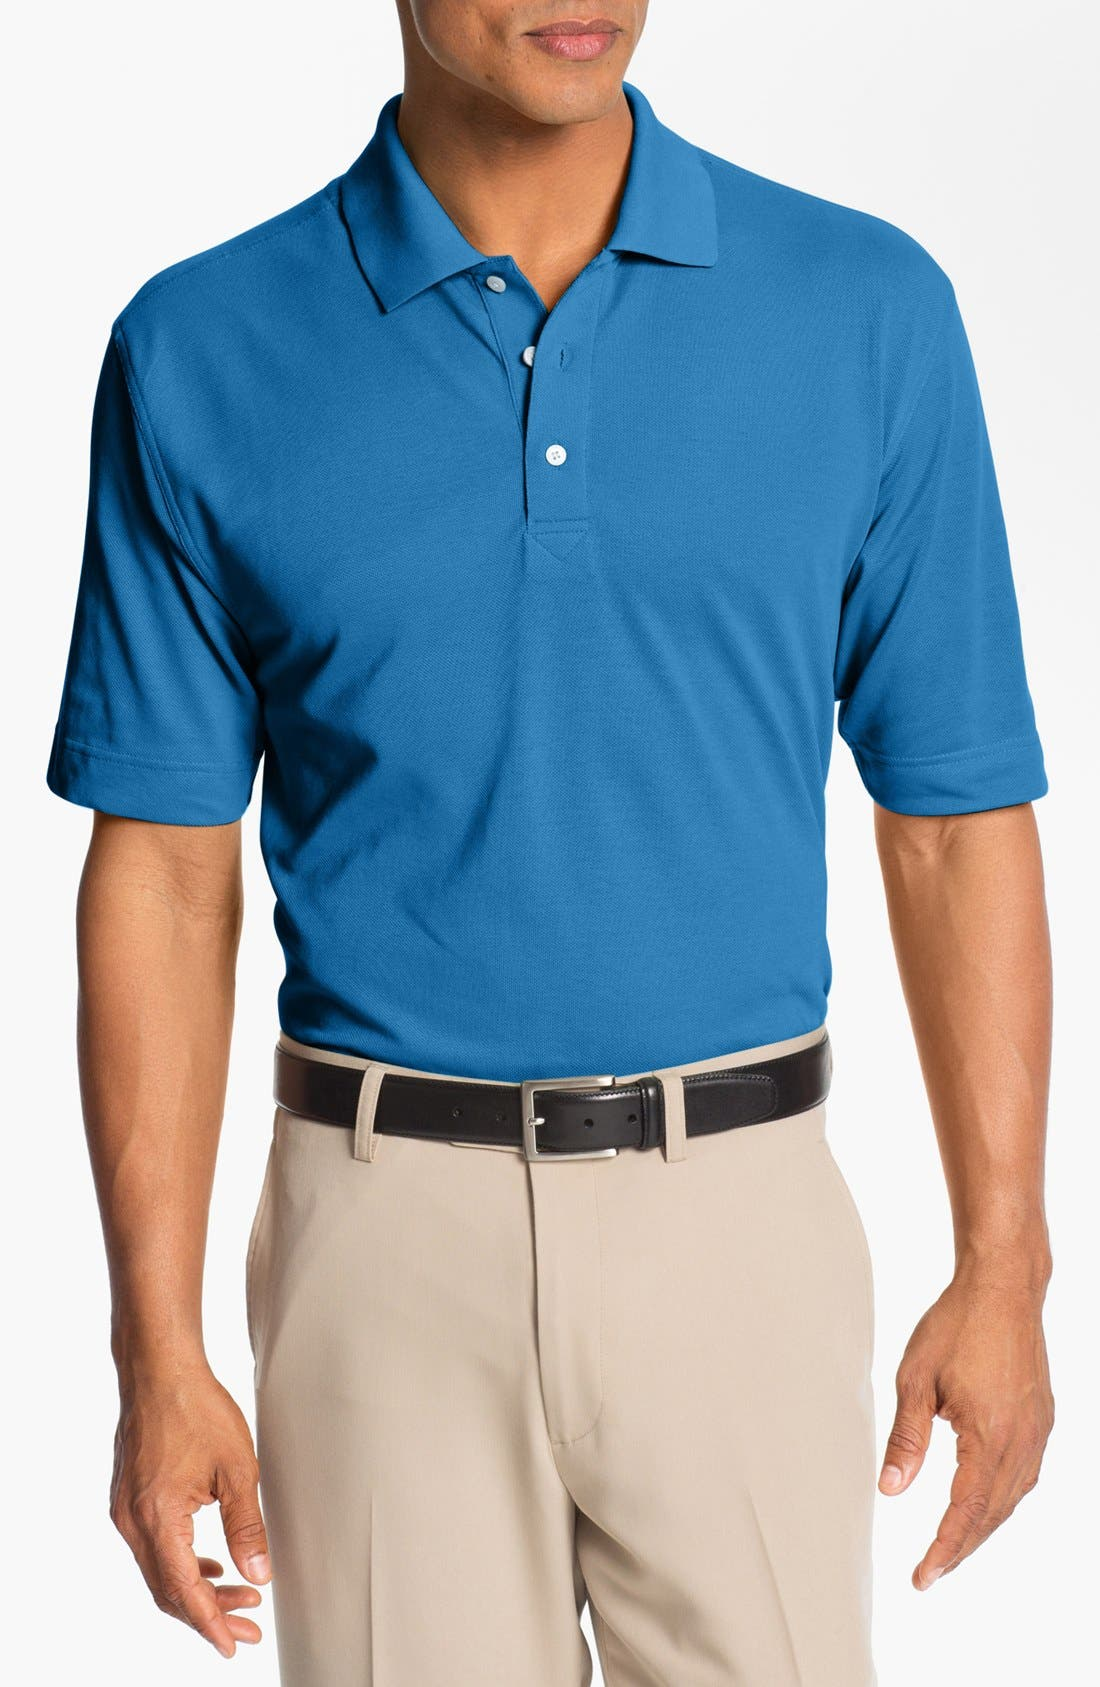 CUTTER & BUCK 'Championship' DryTec Golf Polo